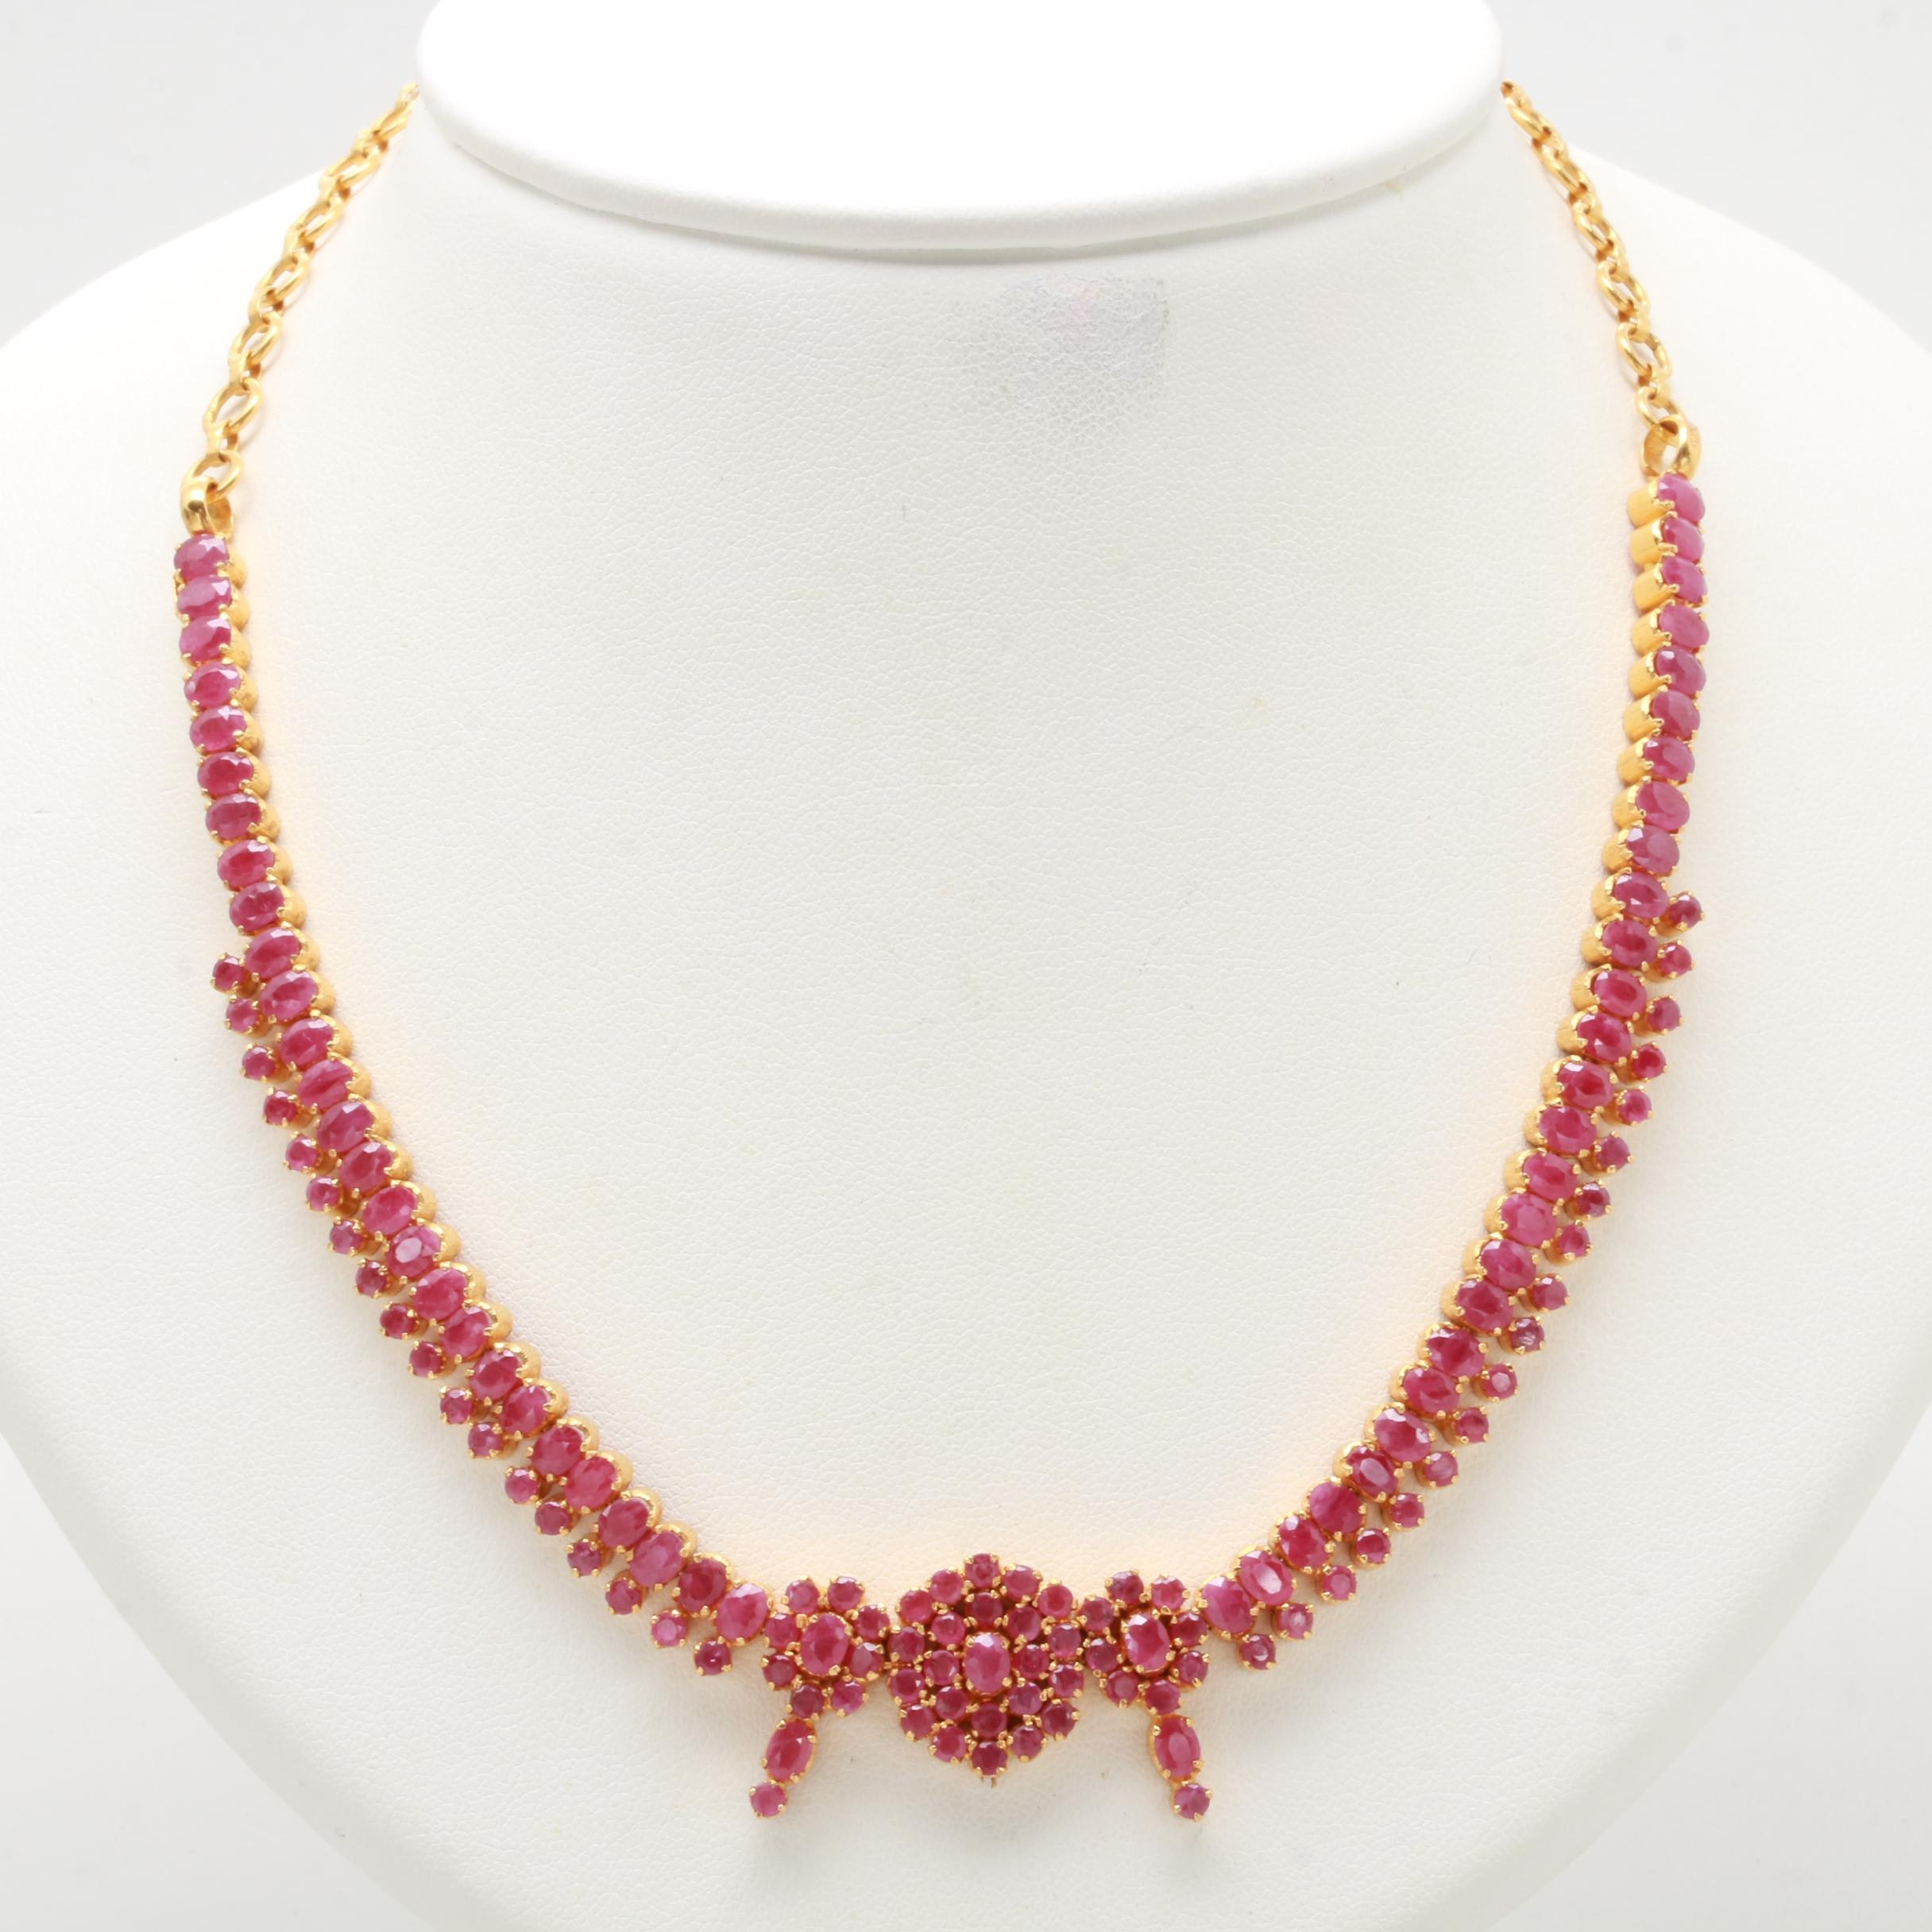 14K Yellow Gold Ruby Necklace